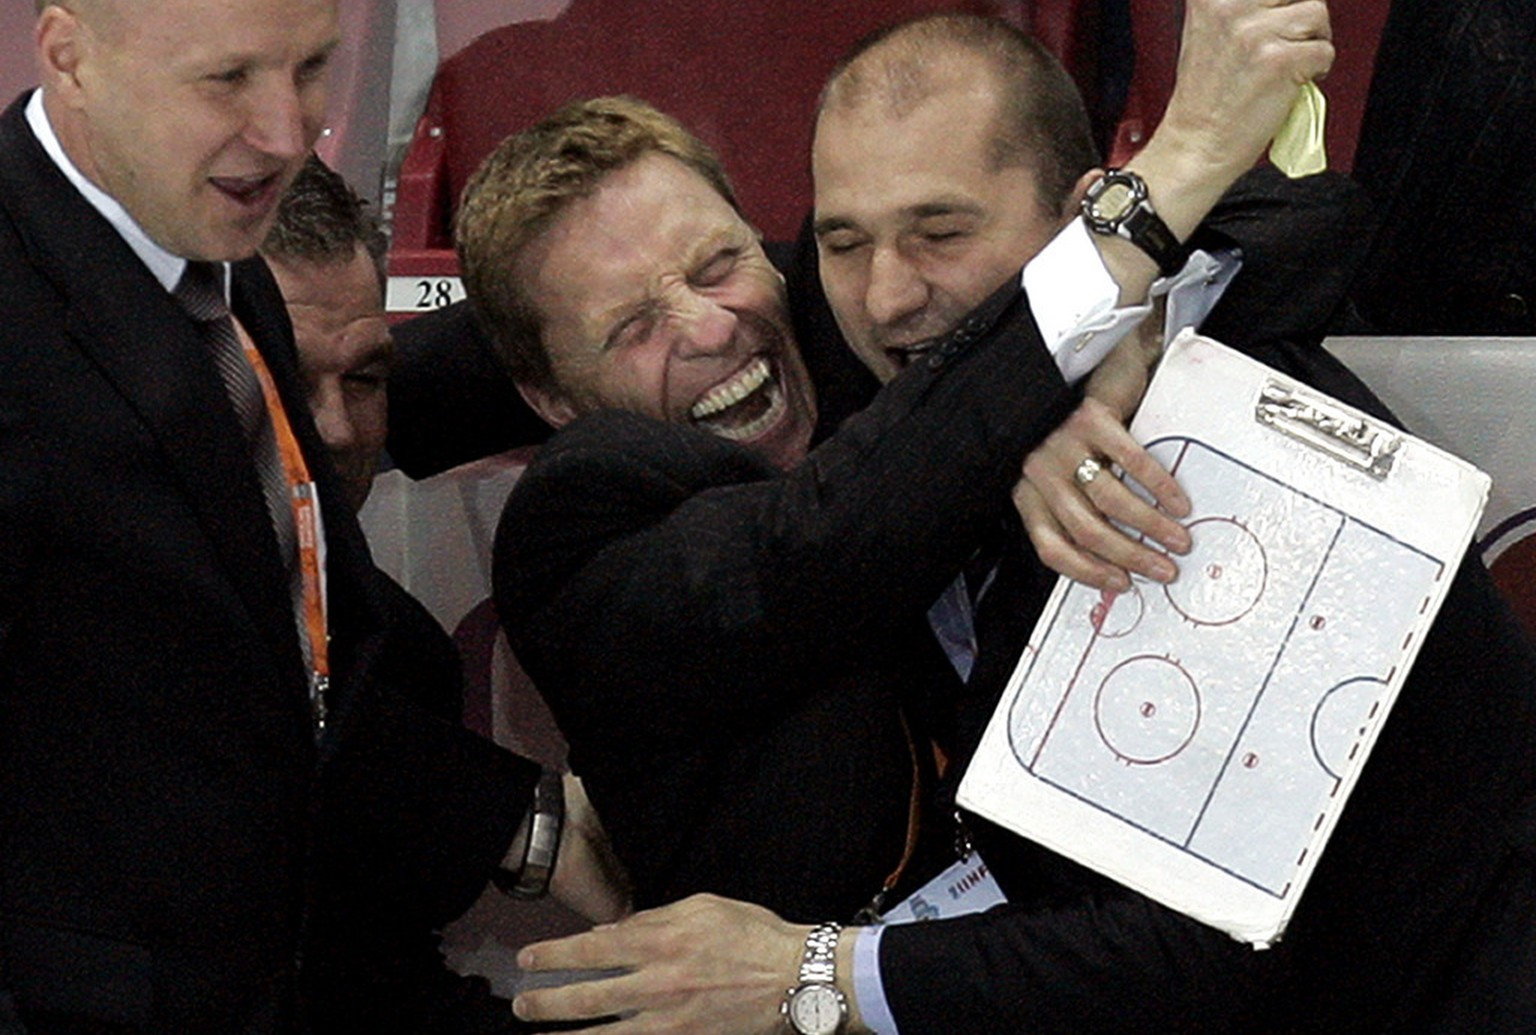 Belarus' head coach Glen Hanlon, center, of the Washington Capitals, and other team officials celebrate their 2-1 victory over Switzerland at the IIHF Ice Hockey World championship match in the Latvian capital Riga Tuesday, May 16, 2006. (KEYSTONE/AP Photo / Ivan Sekretarev)